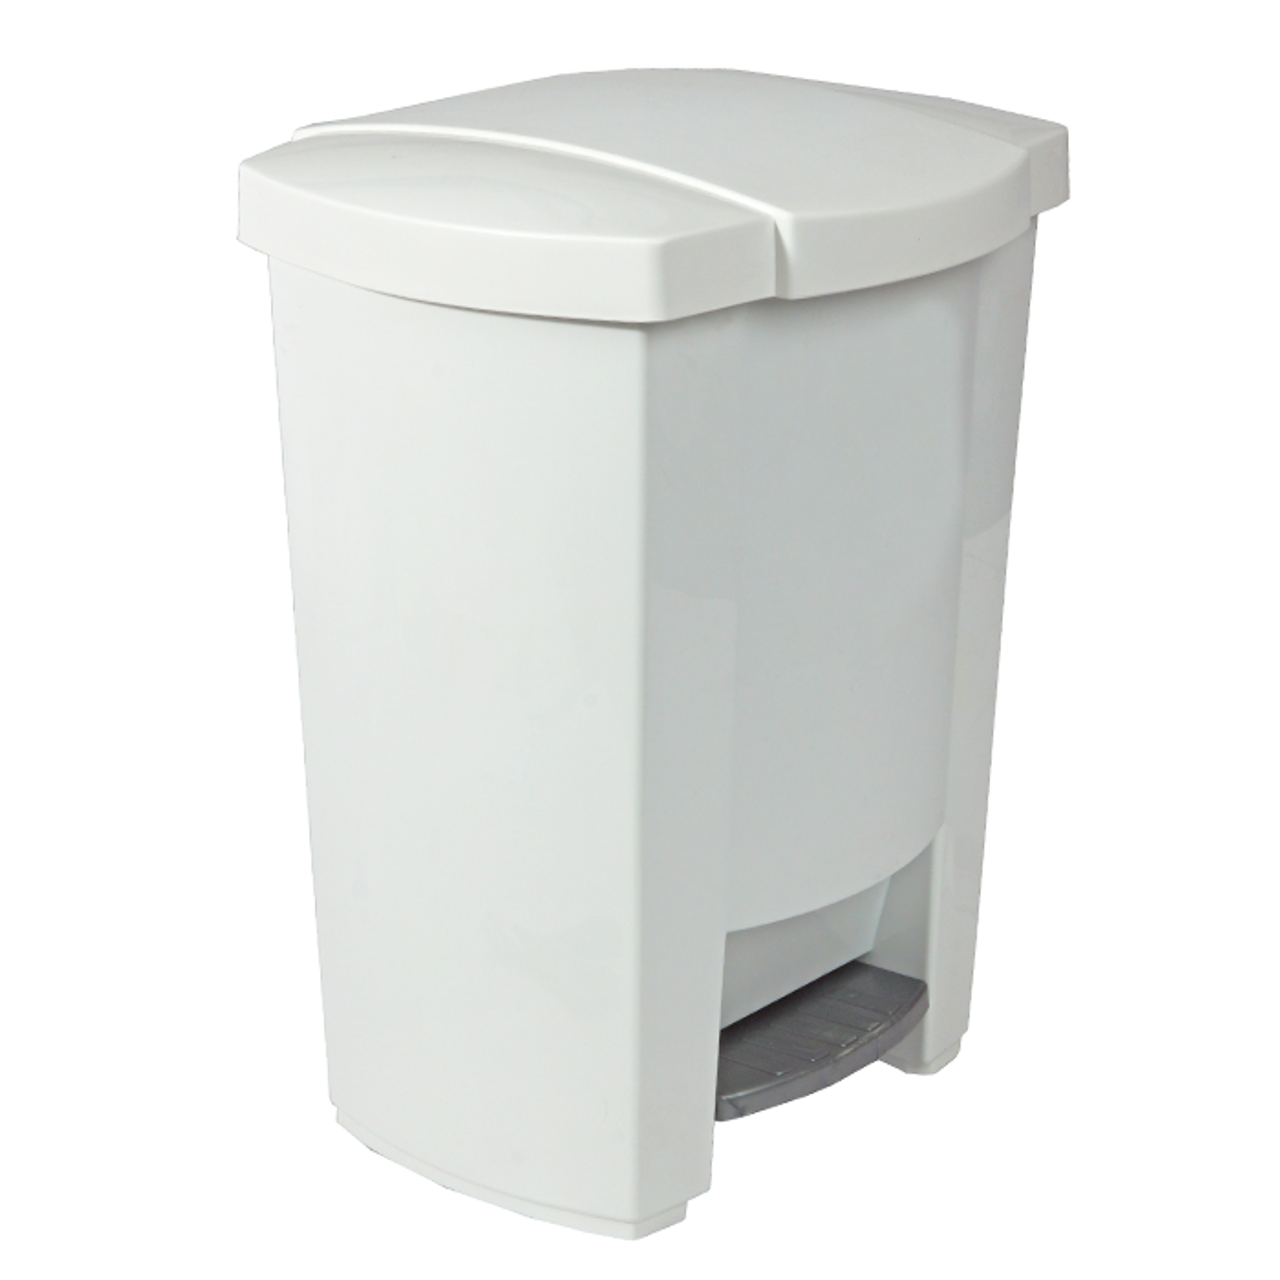 c35ceaa4ac9e Step 'n' Toss Trash Can